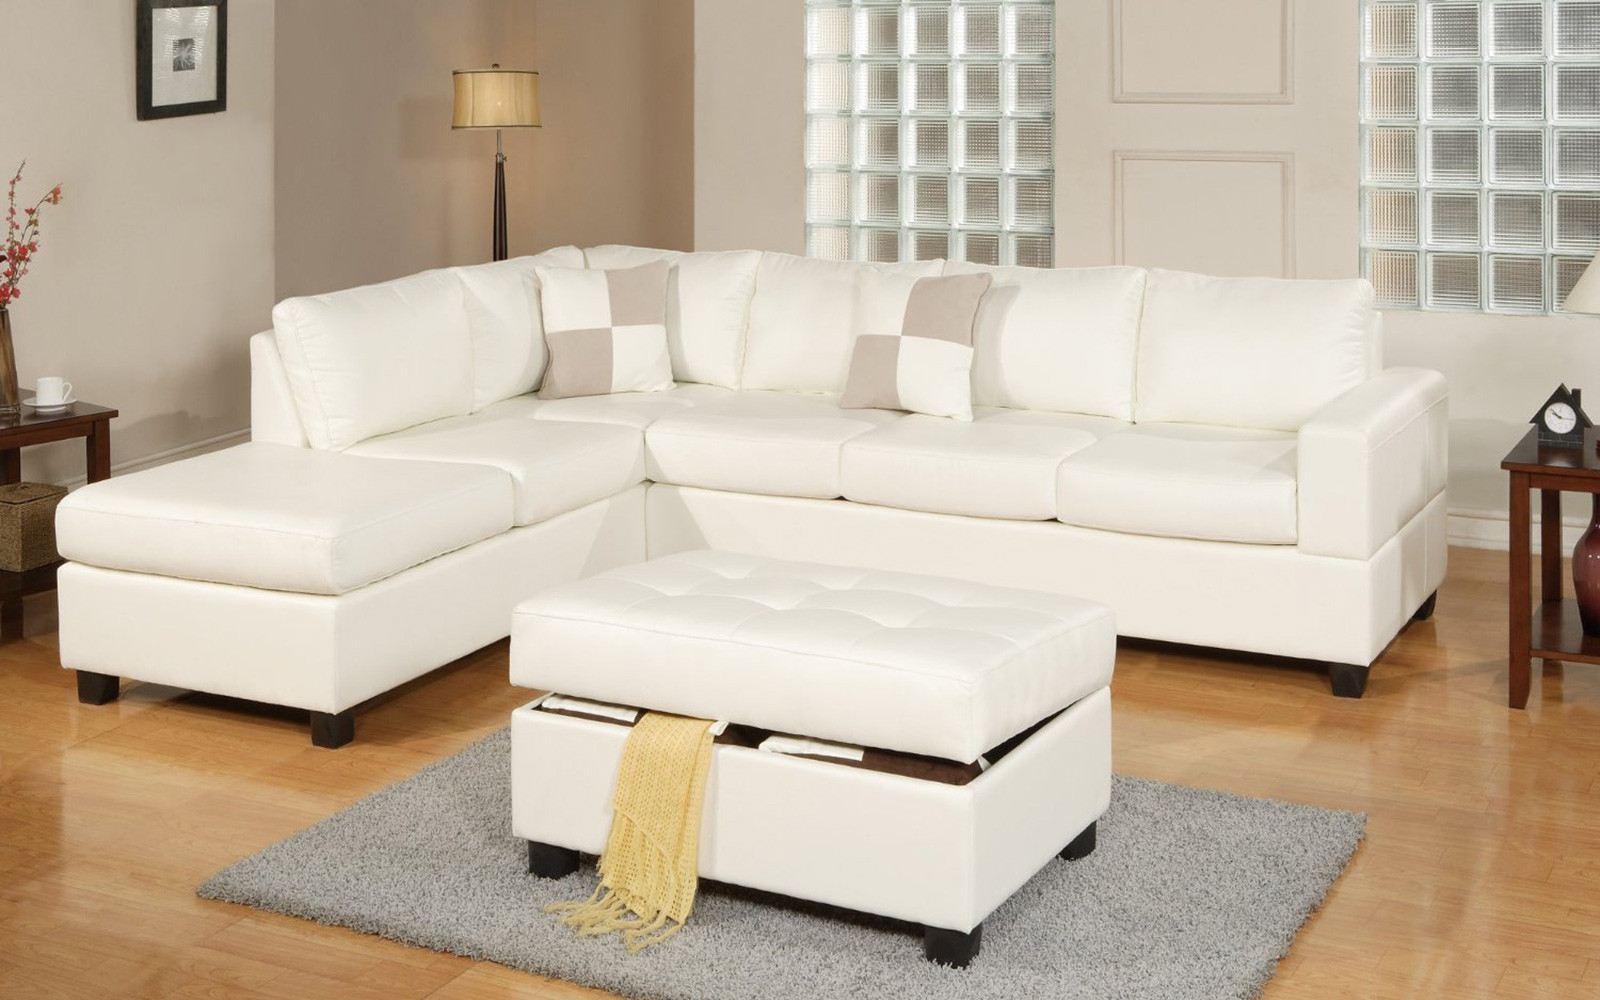 3 Piece Modern Reversible Tufted Bonded Leather Sectional Sofa with Ottoman  sc 1 st  Walmart : sectional ottoman - Sectionals, Sofas & Couches